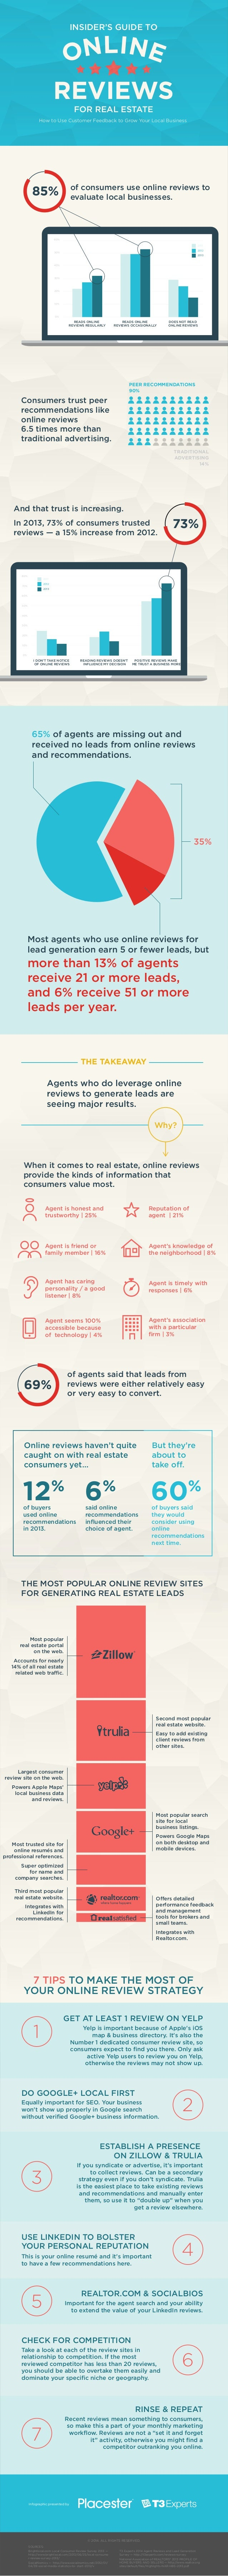 Insiders Guide To Customer Reviews for Real Estate & Local Businesses